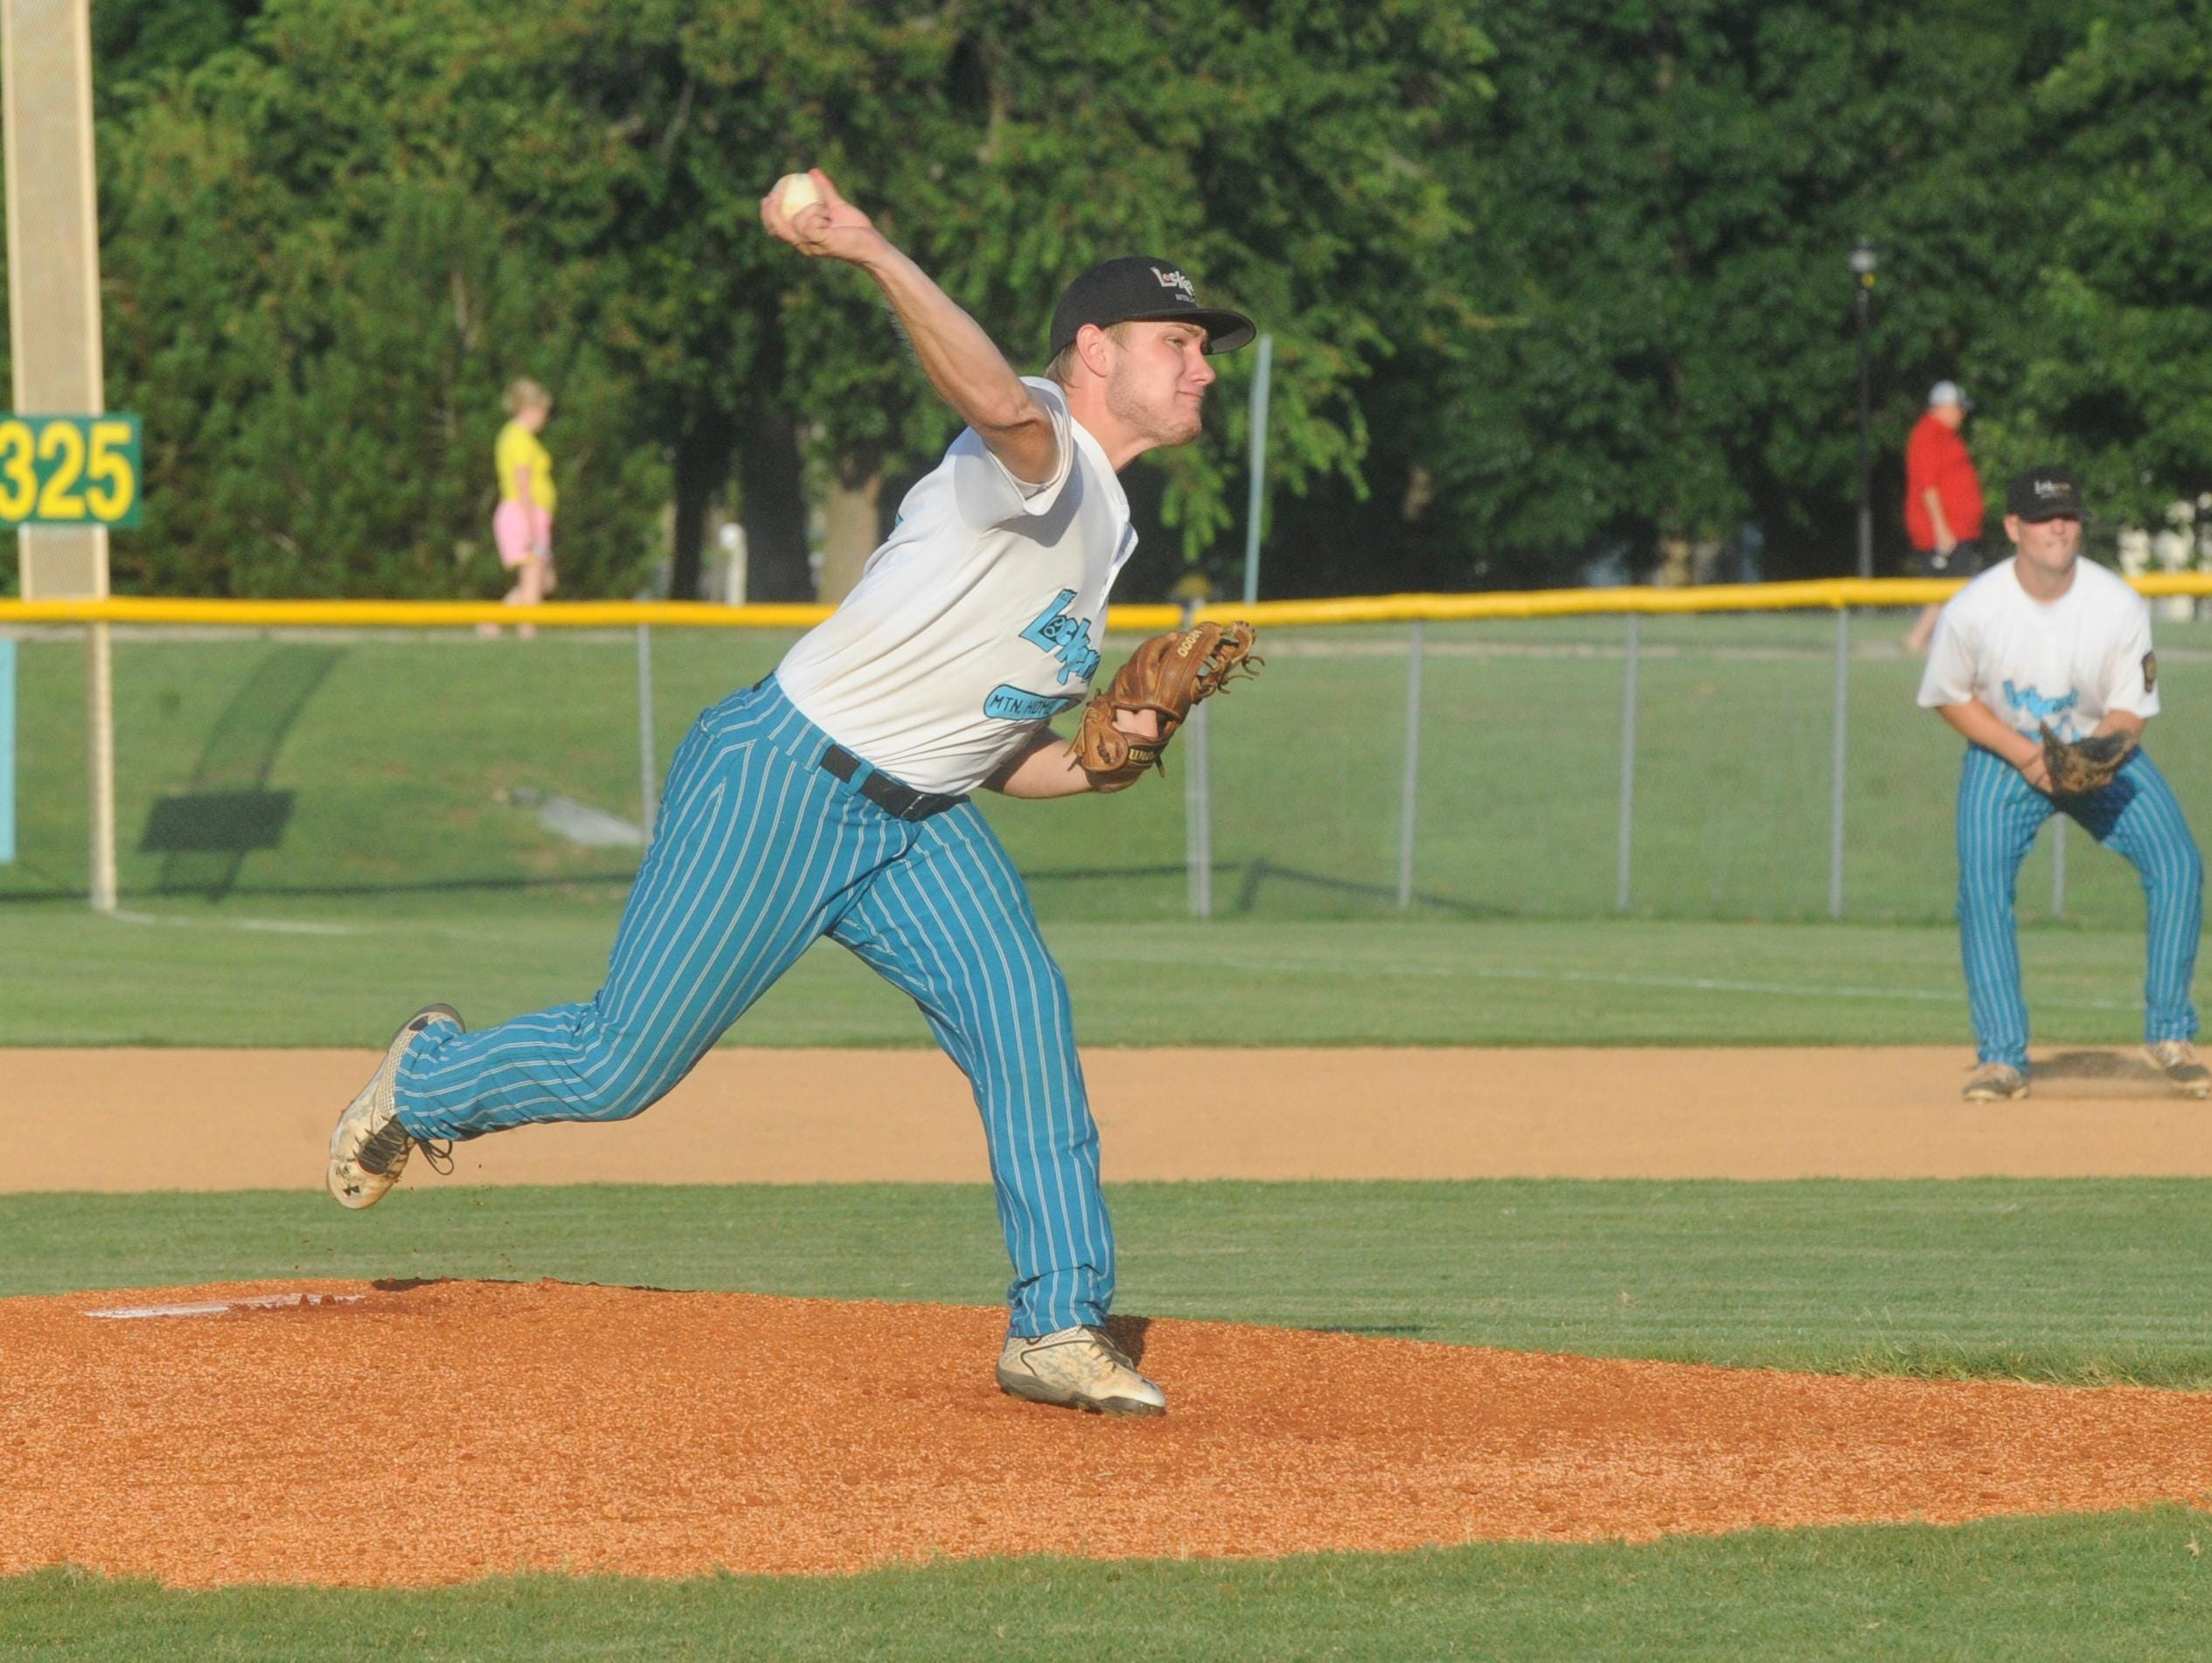 Mountain Home pitcher Hayden Hall delivers to the plate during Lockeroom's game on Friday against Blytheville. Hall tossed three hitless relief innings in Lockeroom's 11-6 victory over Batesville on Saturday night at Cooper Park.